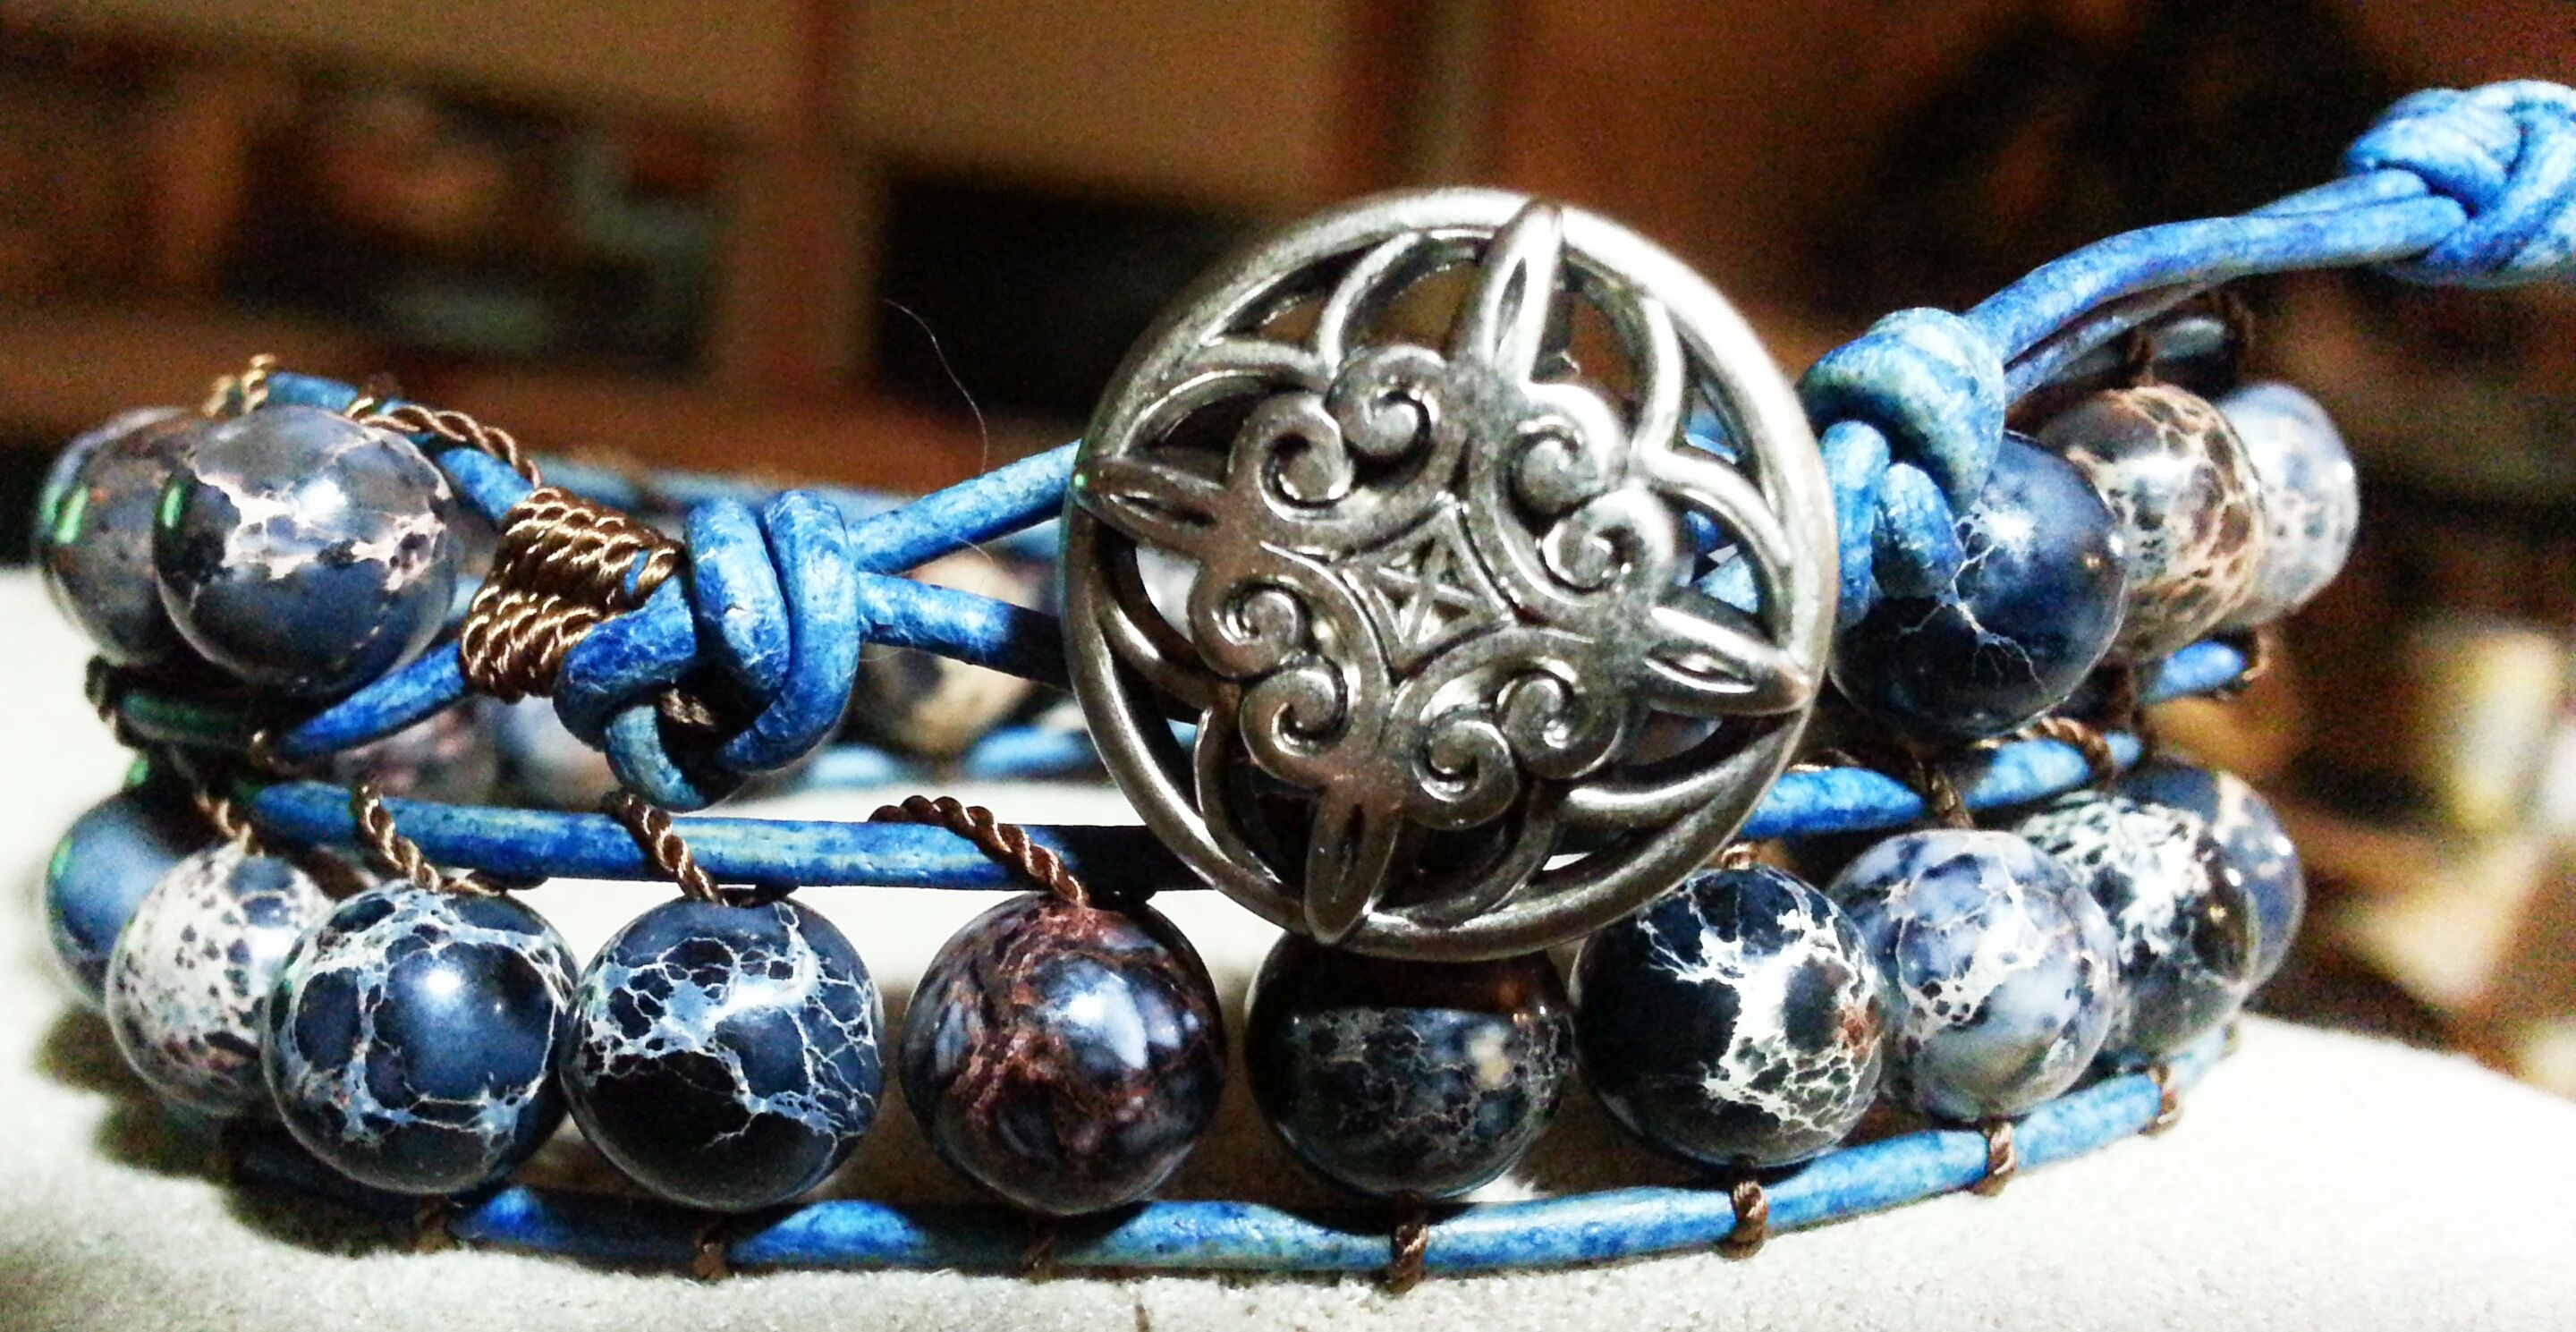 Dyed Dream Jasper with antiqued blue leather and Celtic metal shank button - sold